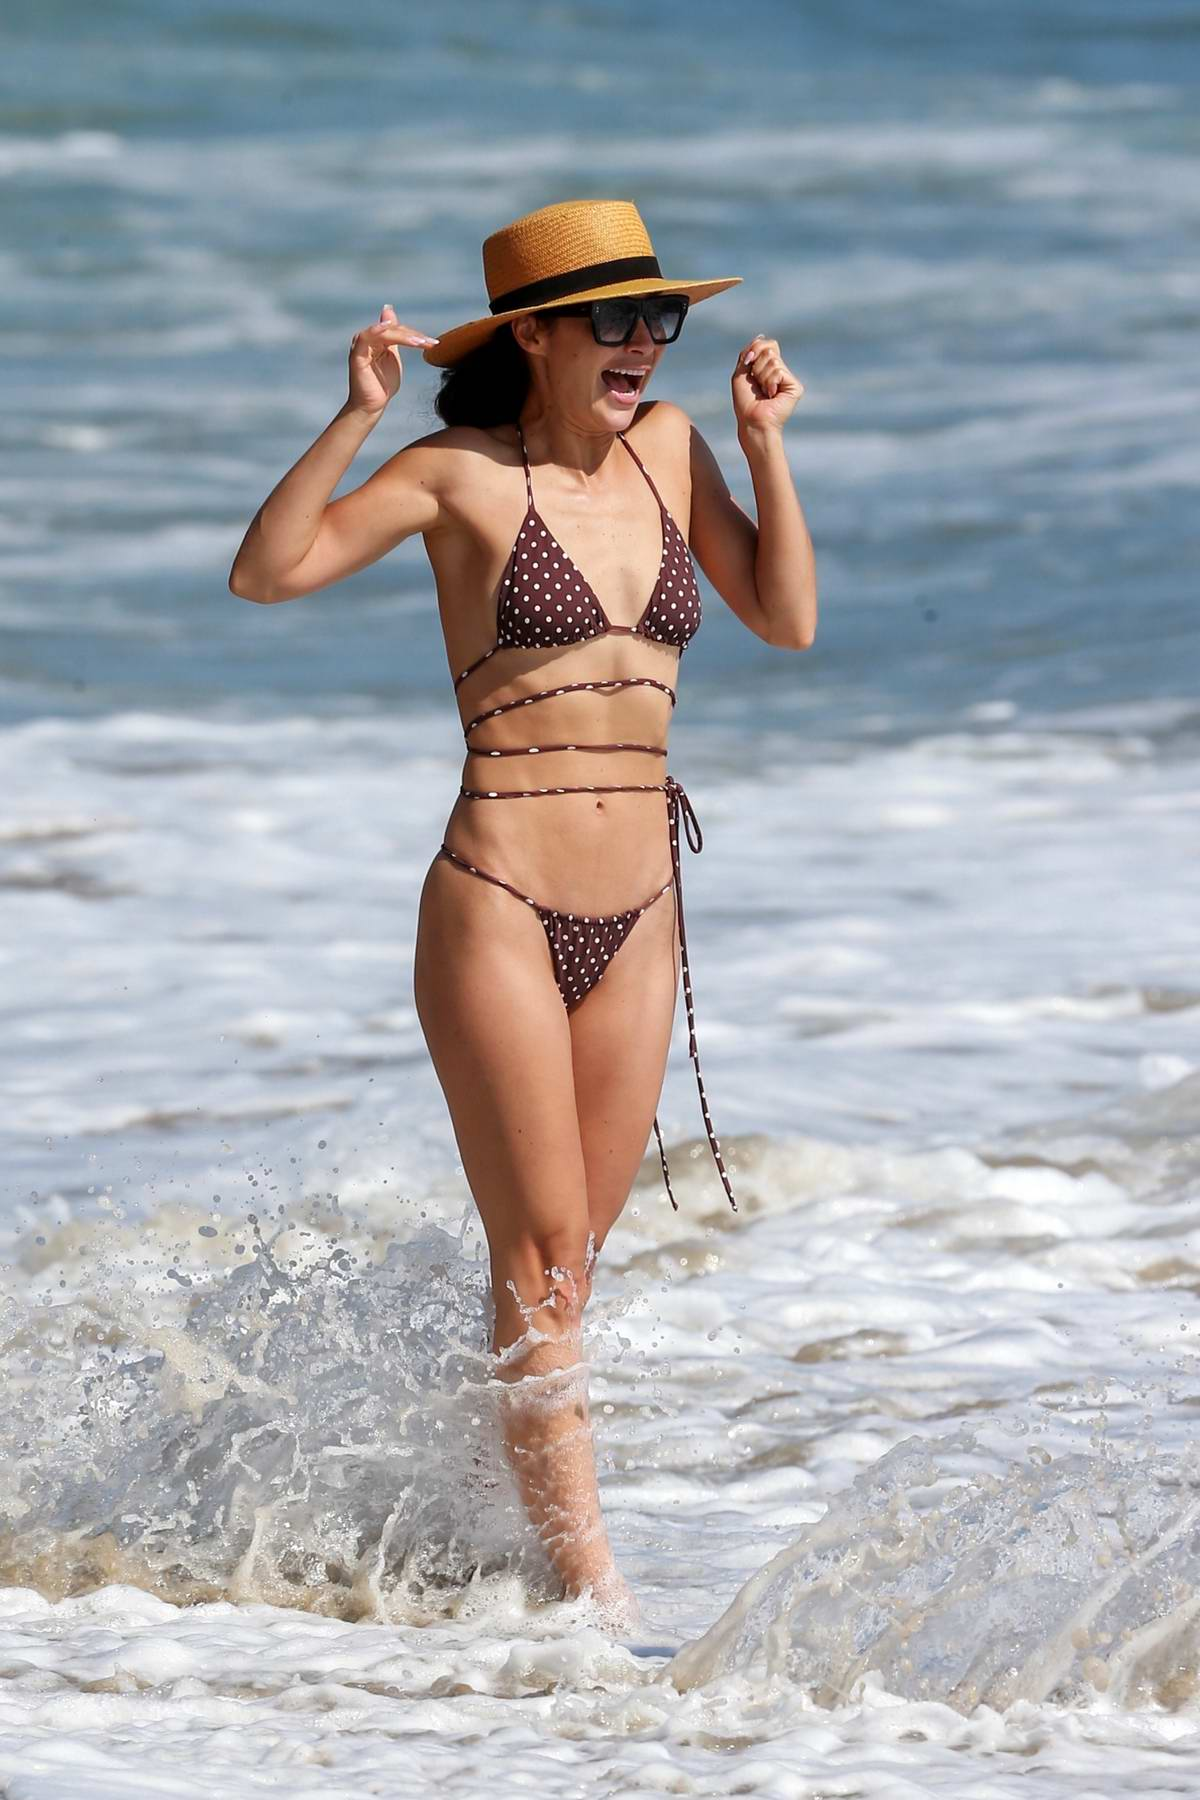 Cara Santana dons a polka dot bikini while enjoying a day at the beach with friends in Malibu, California